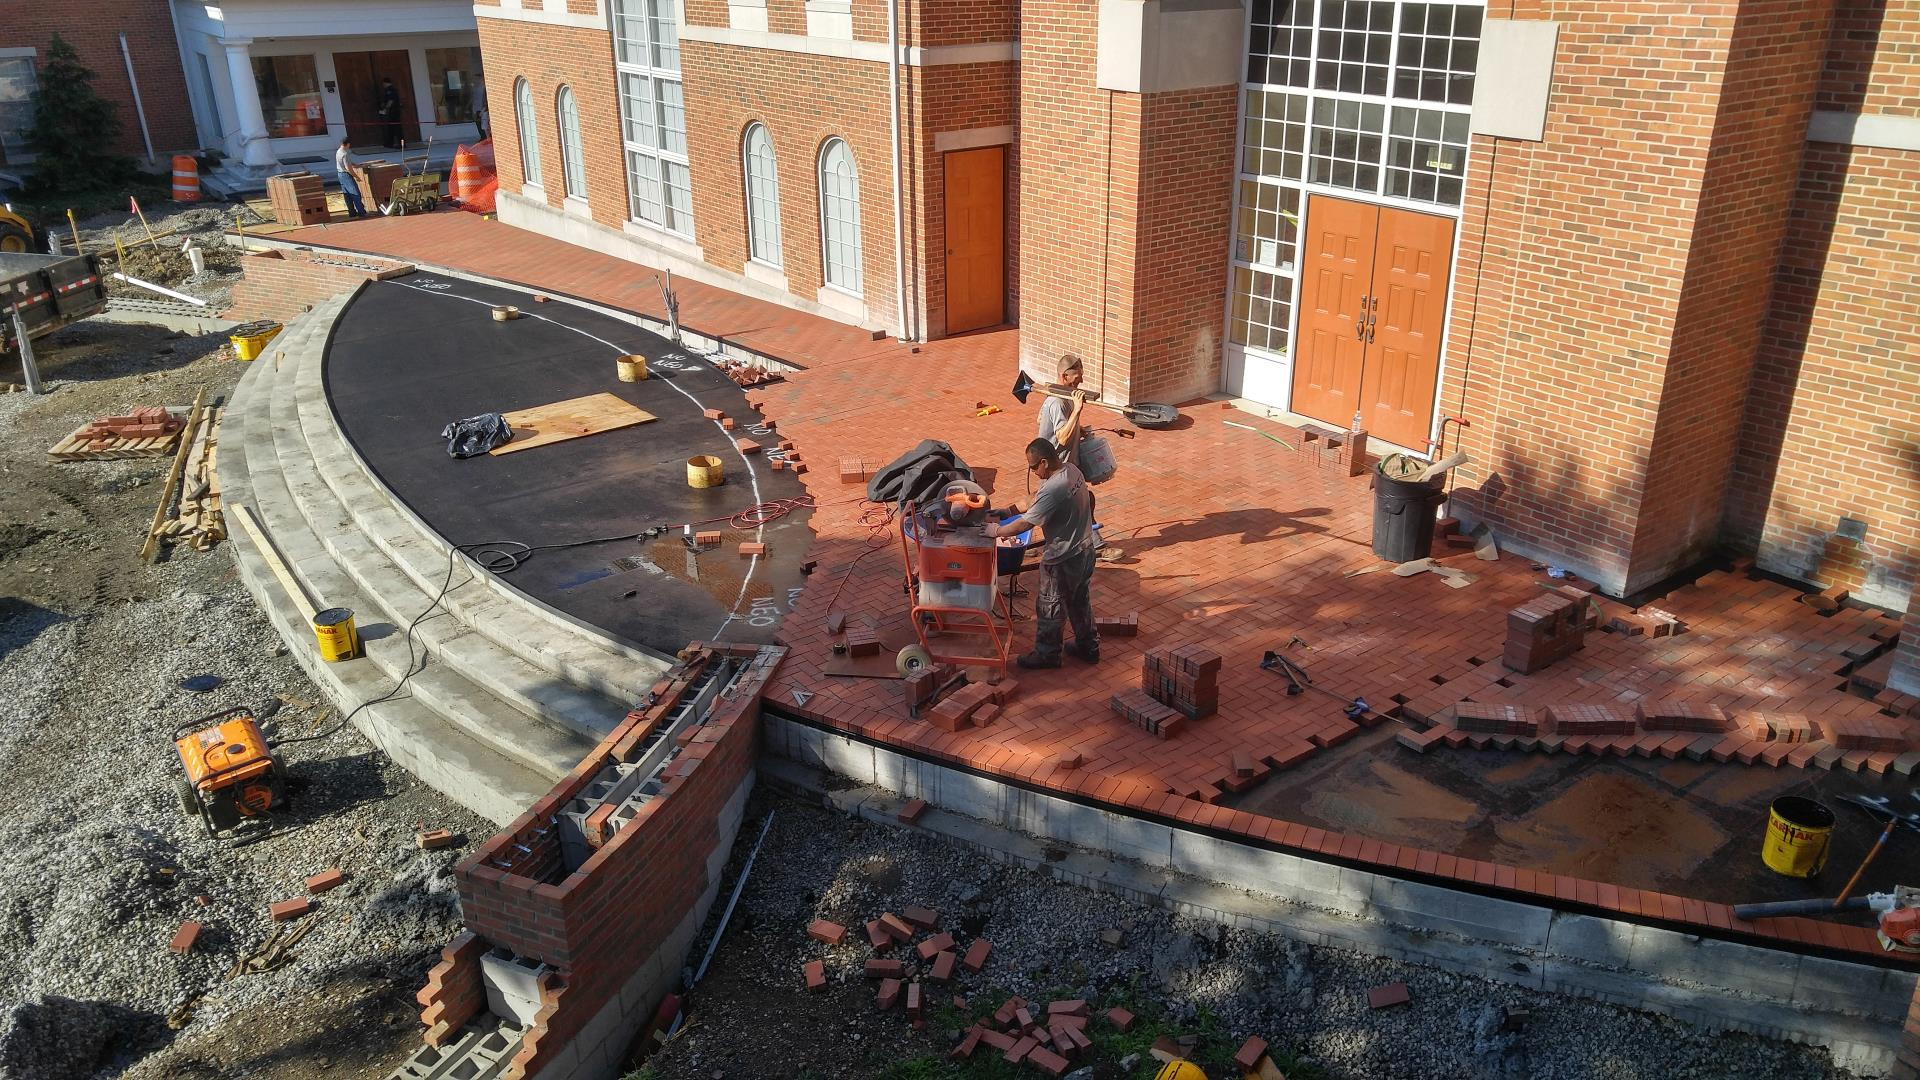 Bricklaying in front of City Hall continues.